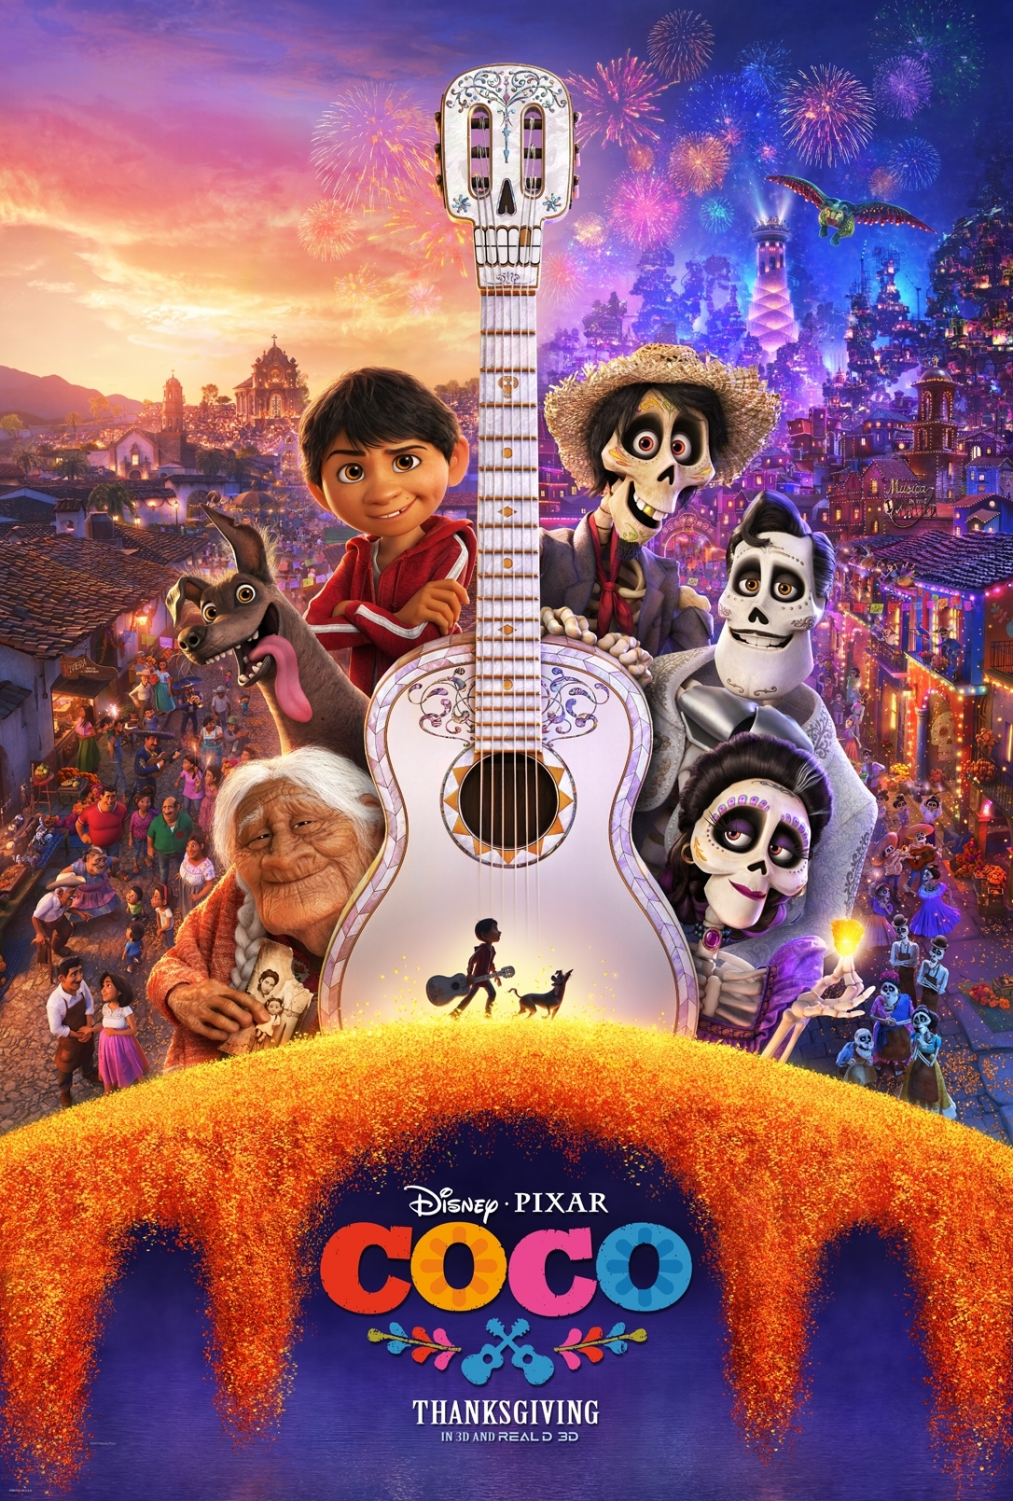 Promotional poster for